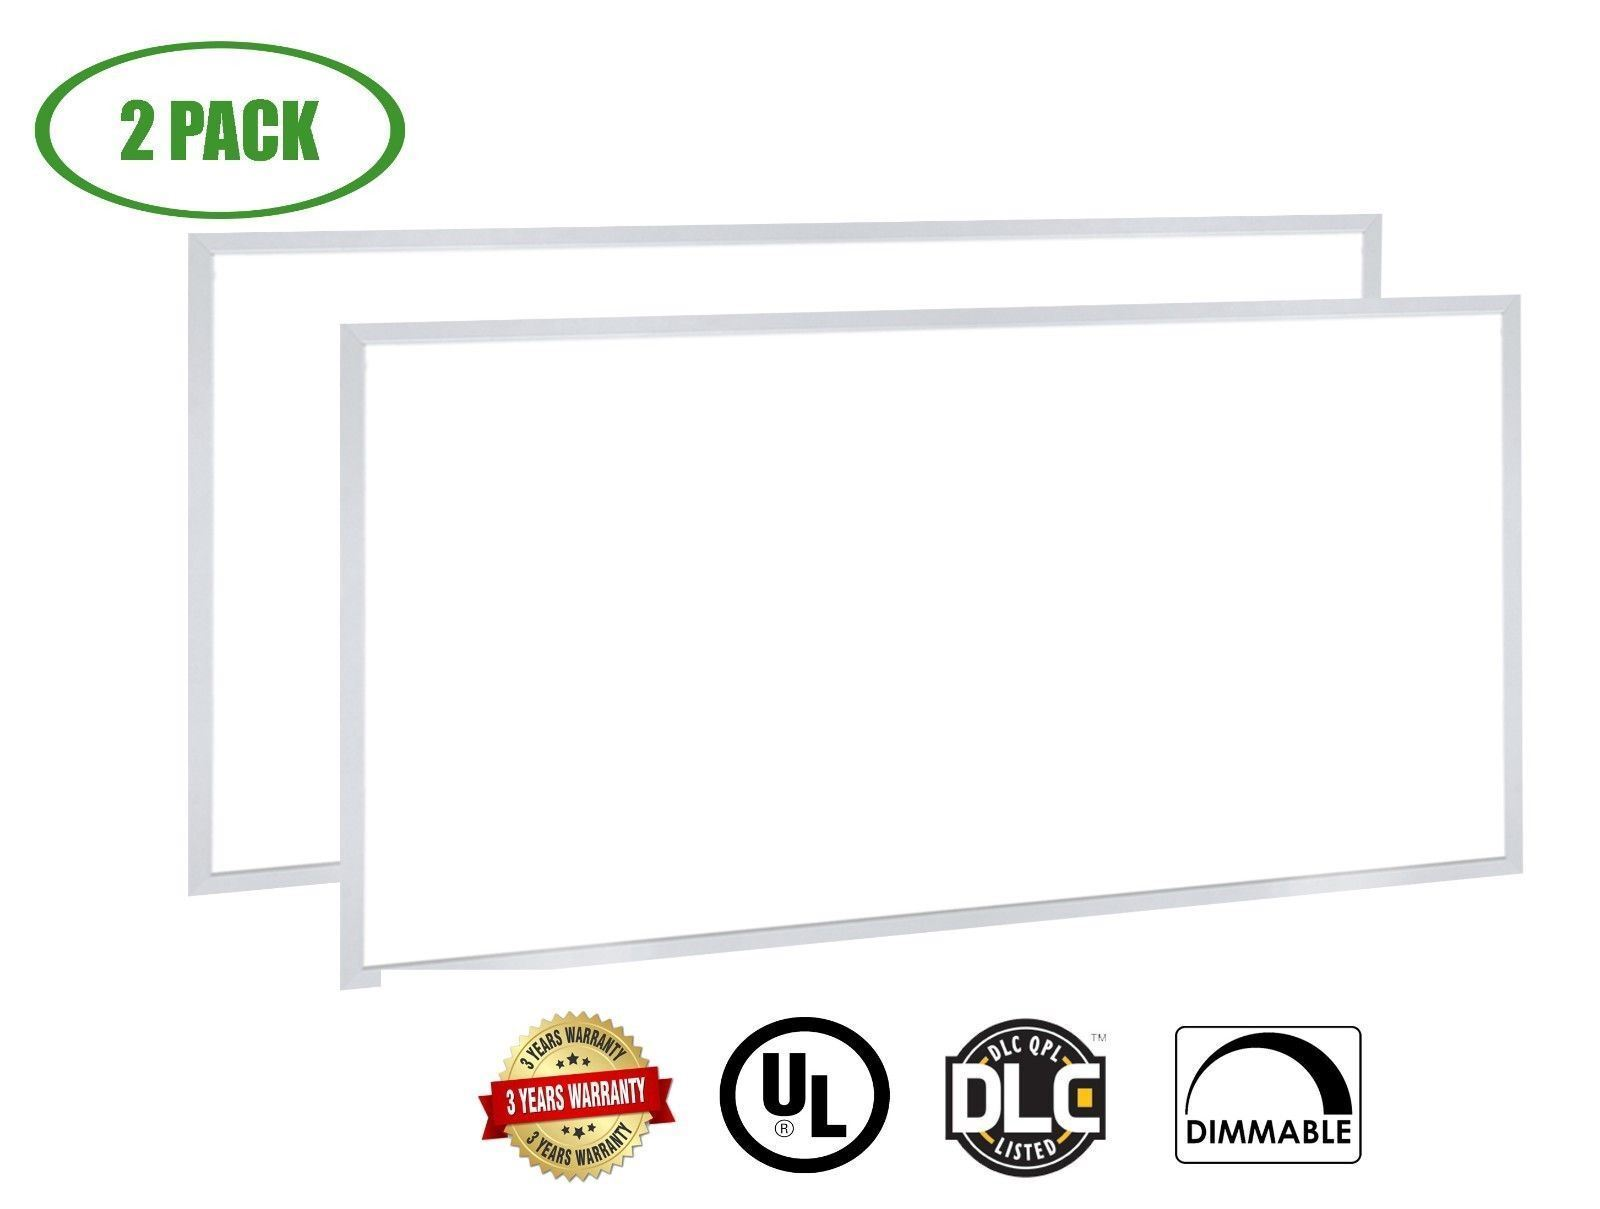 Panel De Luz LED Súper Brillante & delgada por Canopus 2x4ft 50W 3500K Regulable [2 Pack]